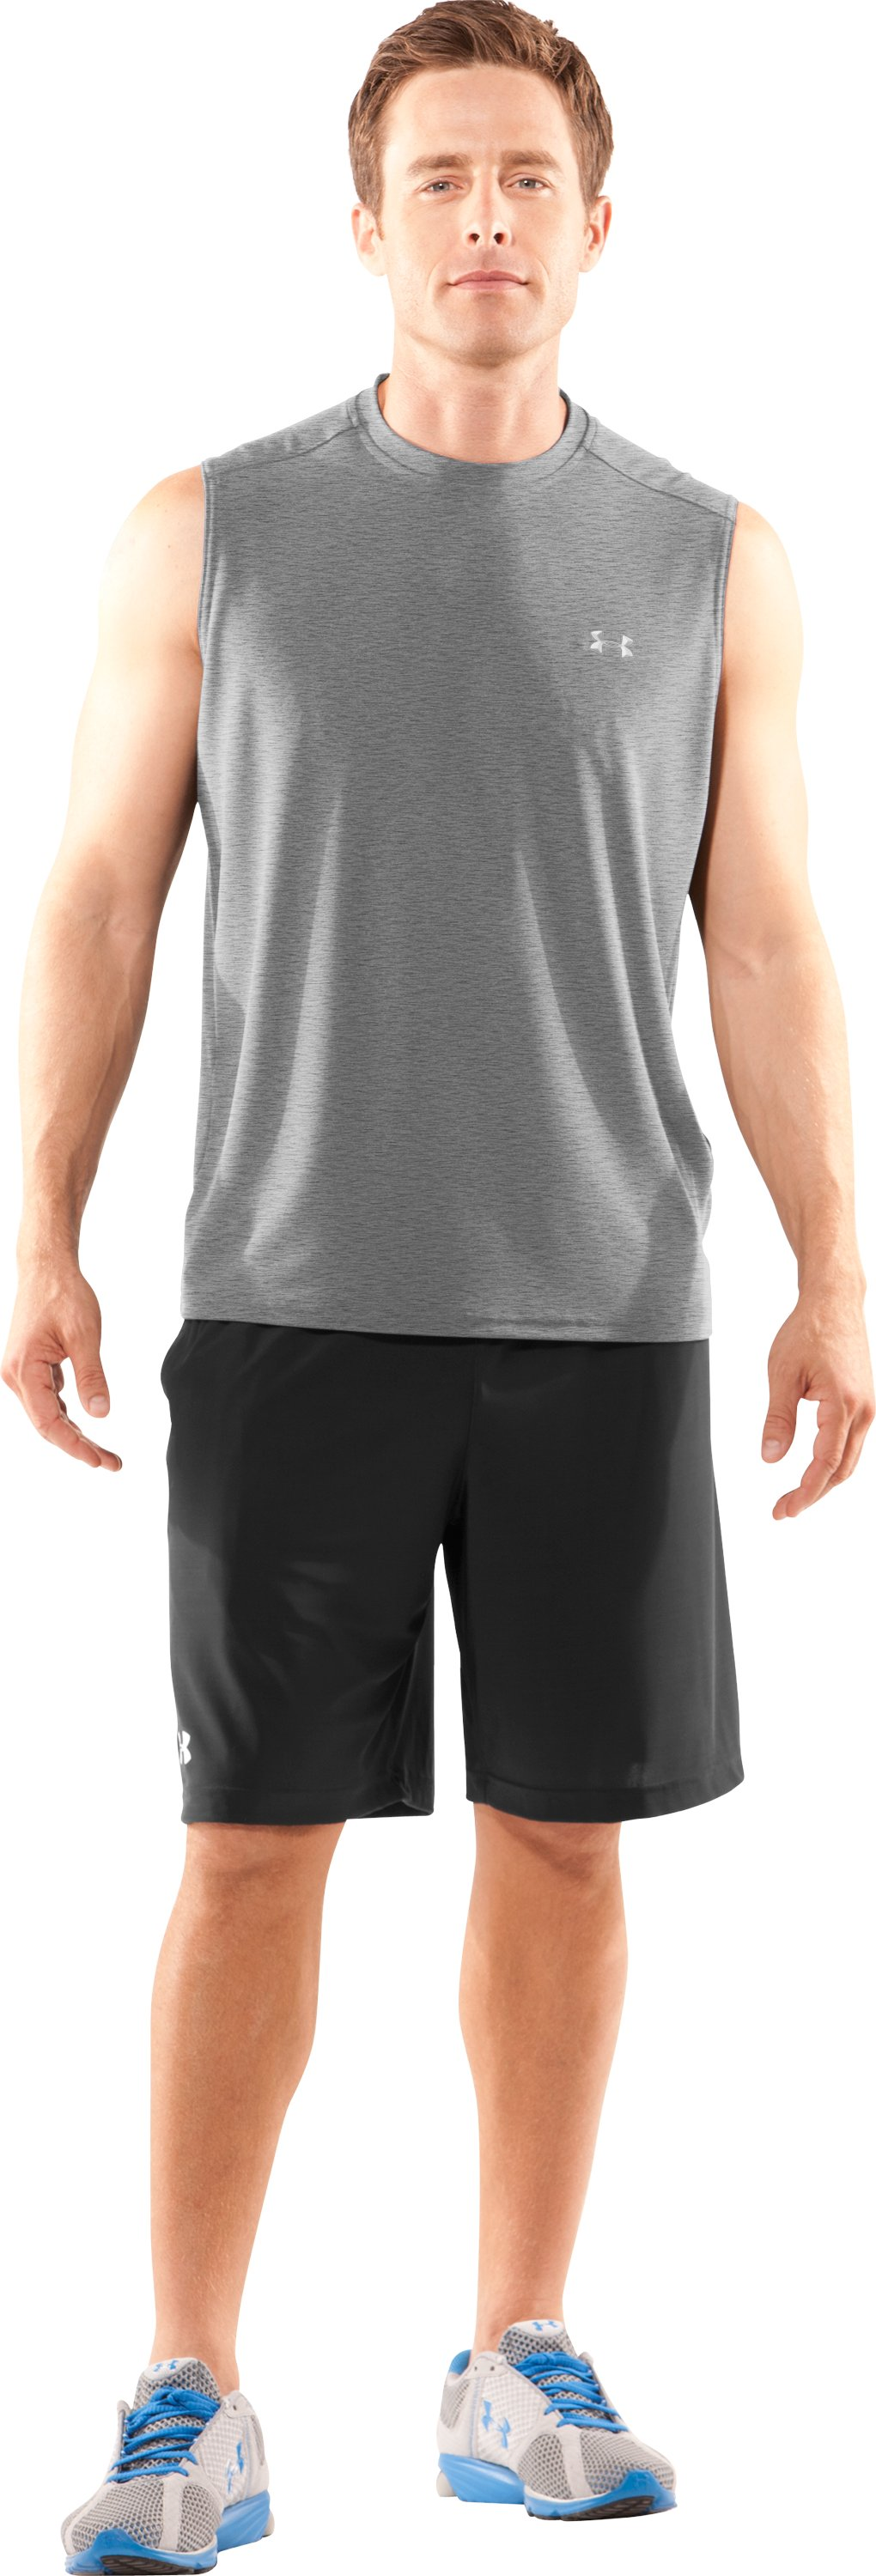 Men's TNP Sleeveless T-Shirt, True Gray Heather, zoomed image